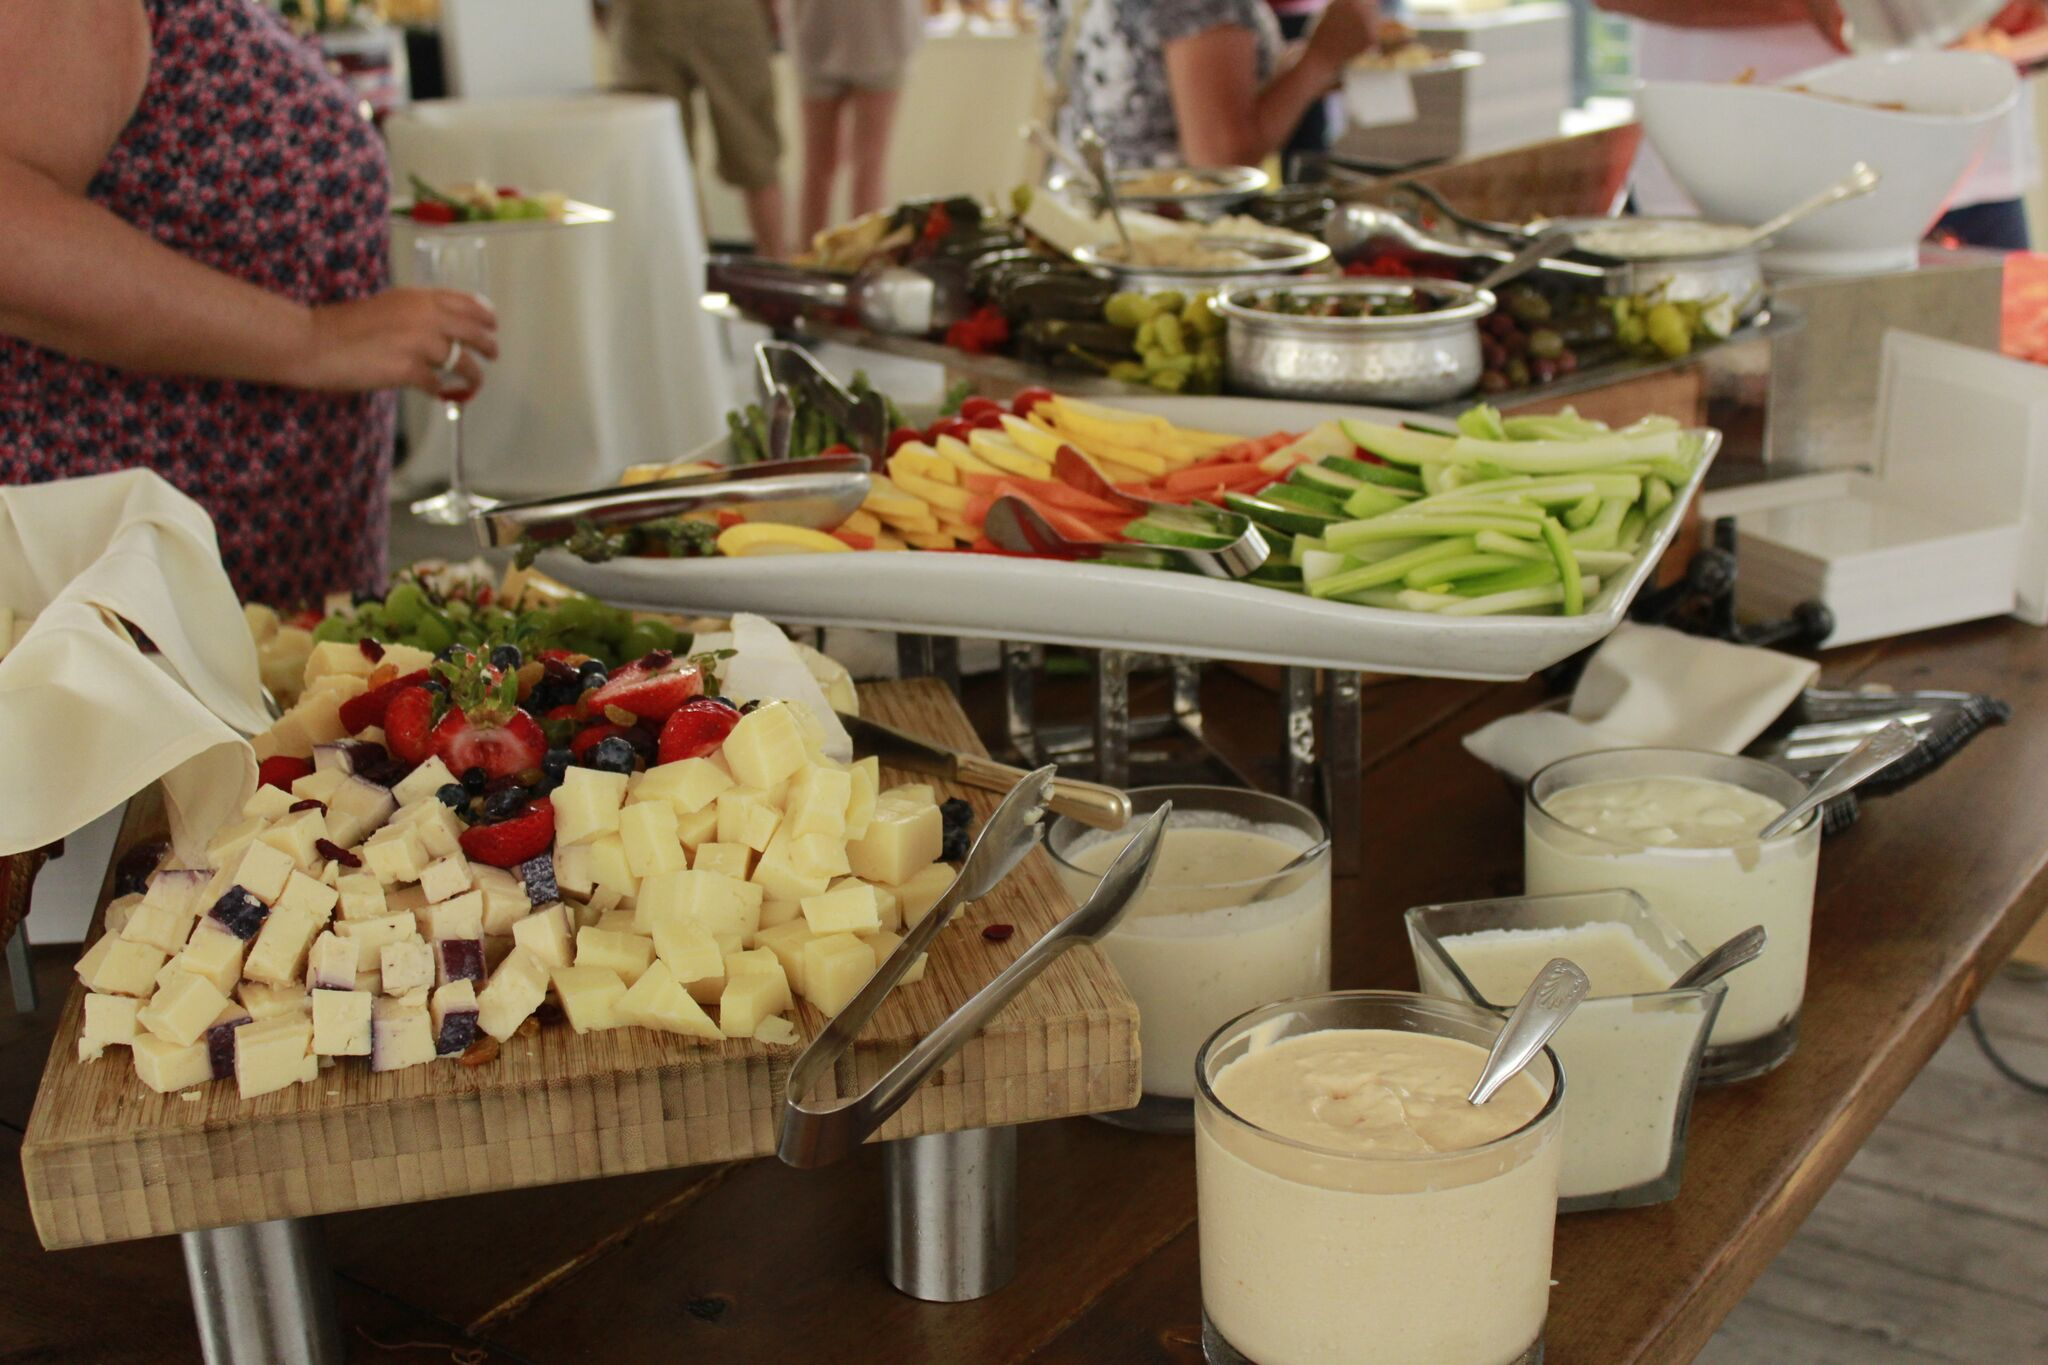 Enjoy hors d'oeuvres while shopping.